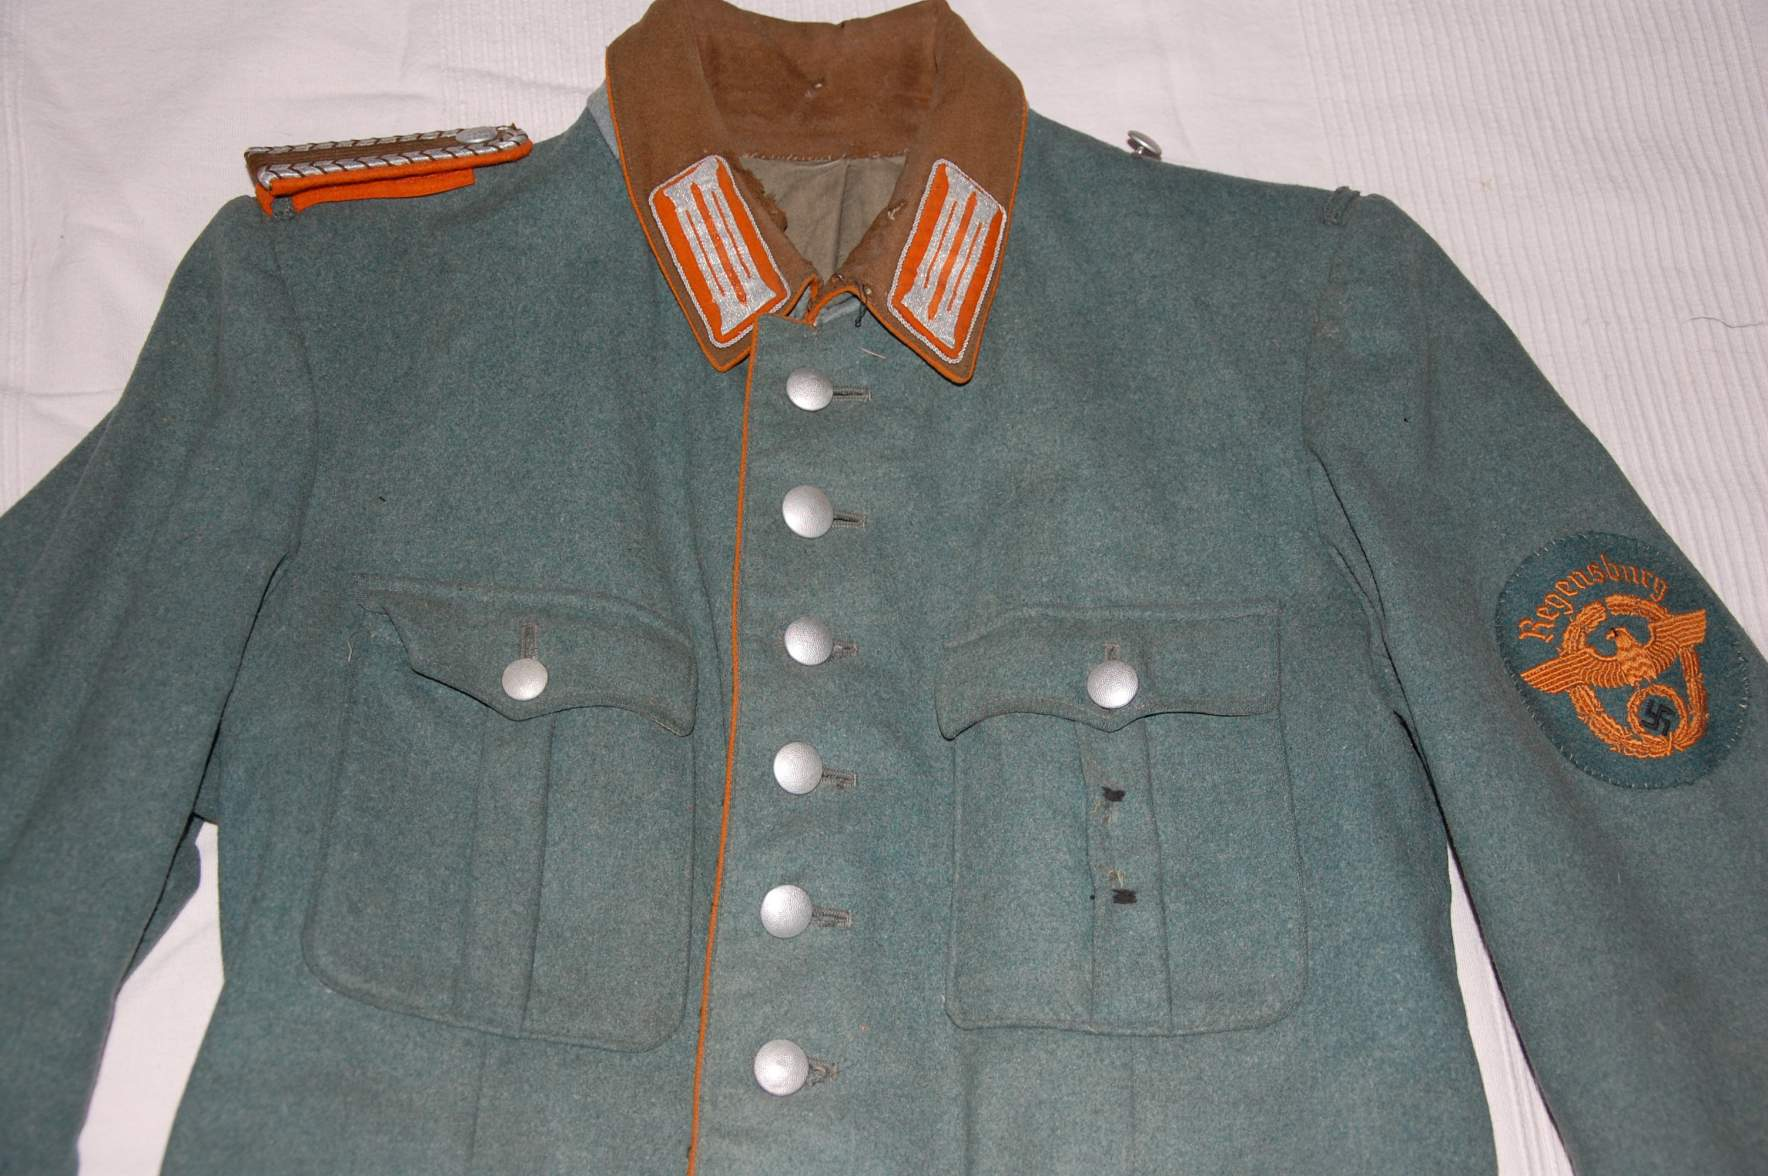 Question German Gendarmerie Uniform And Other Things Found